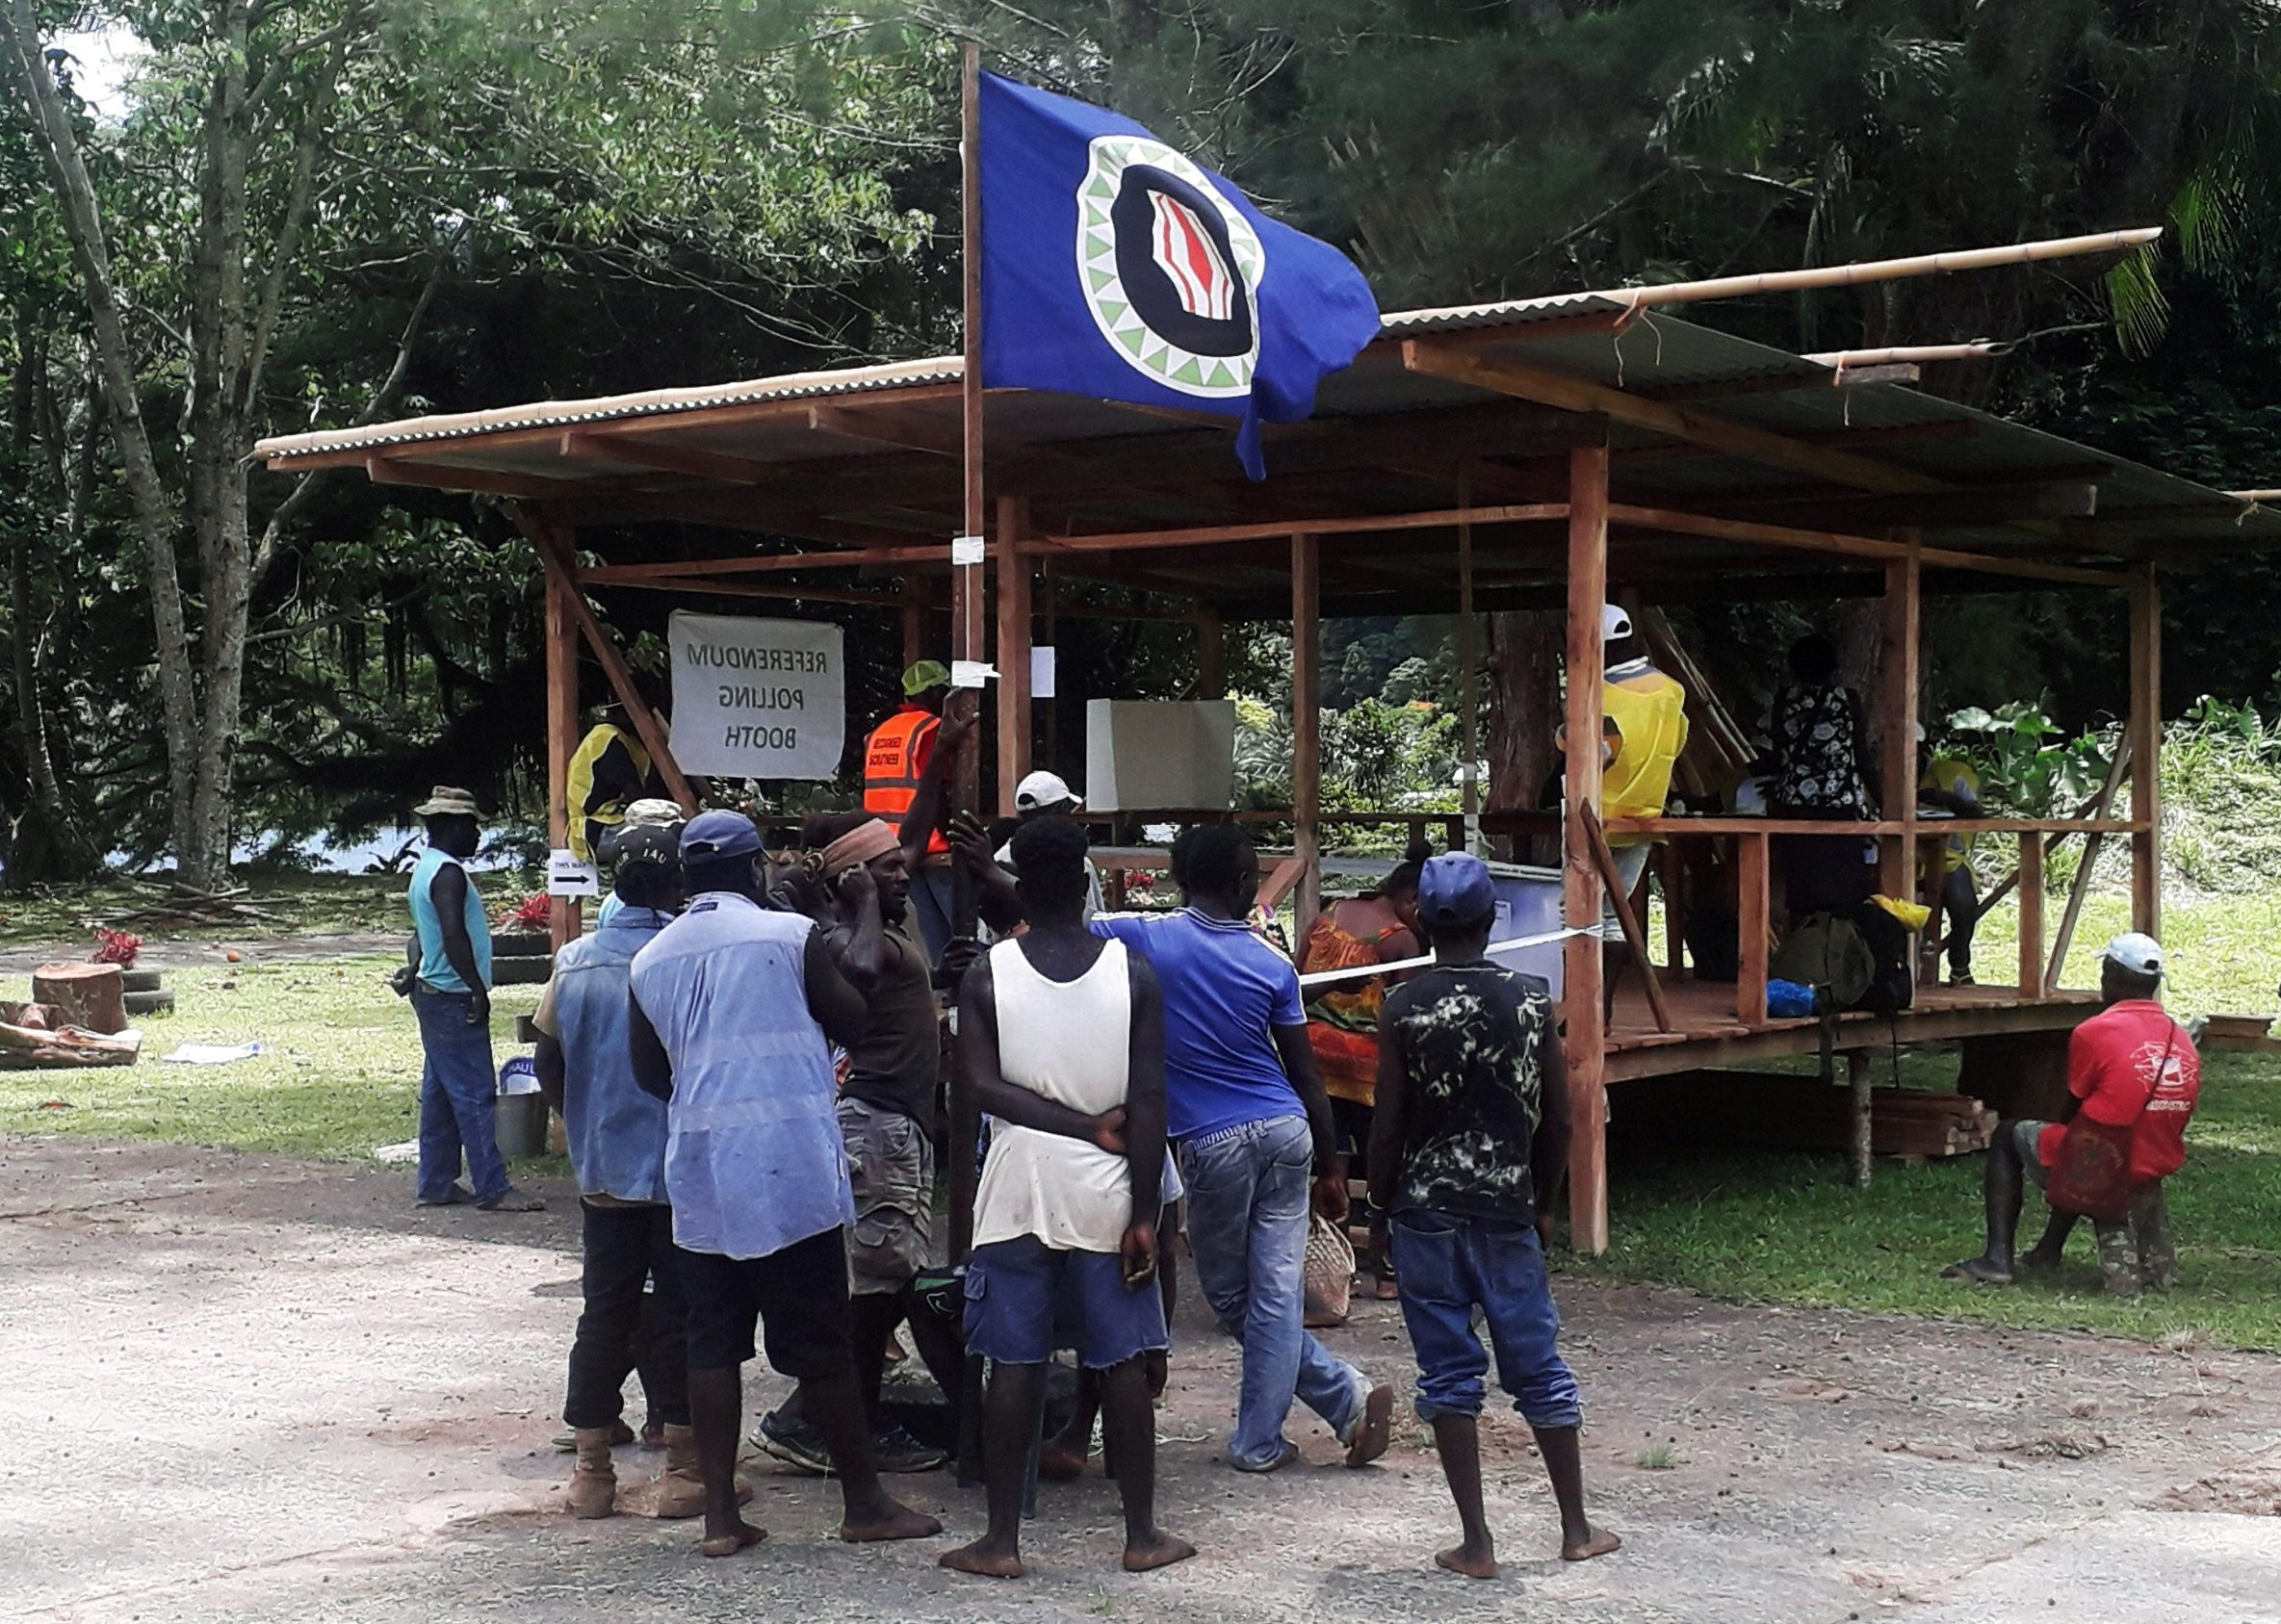 FILE PHOTO: Residents hold a Bougainville flag at a polling station during a non-binding independence referendum in Arawa, on the Papua New Guinea island of Bougainville November 26, 2019.  REUTERS/Melvin Levongo/File Photo